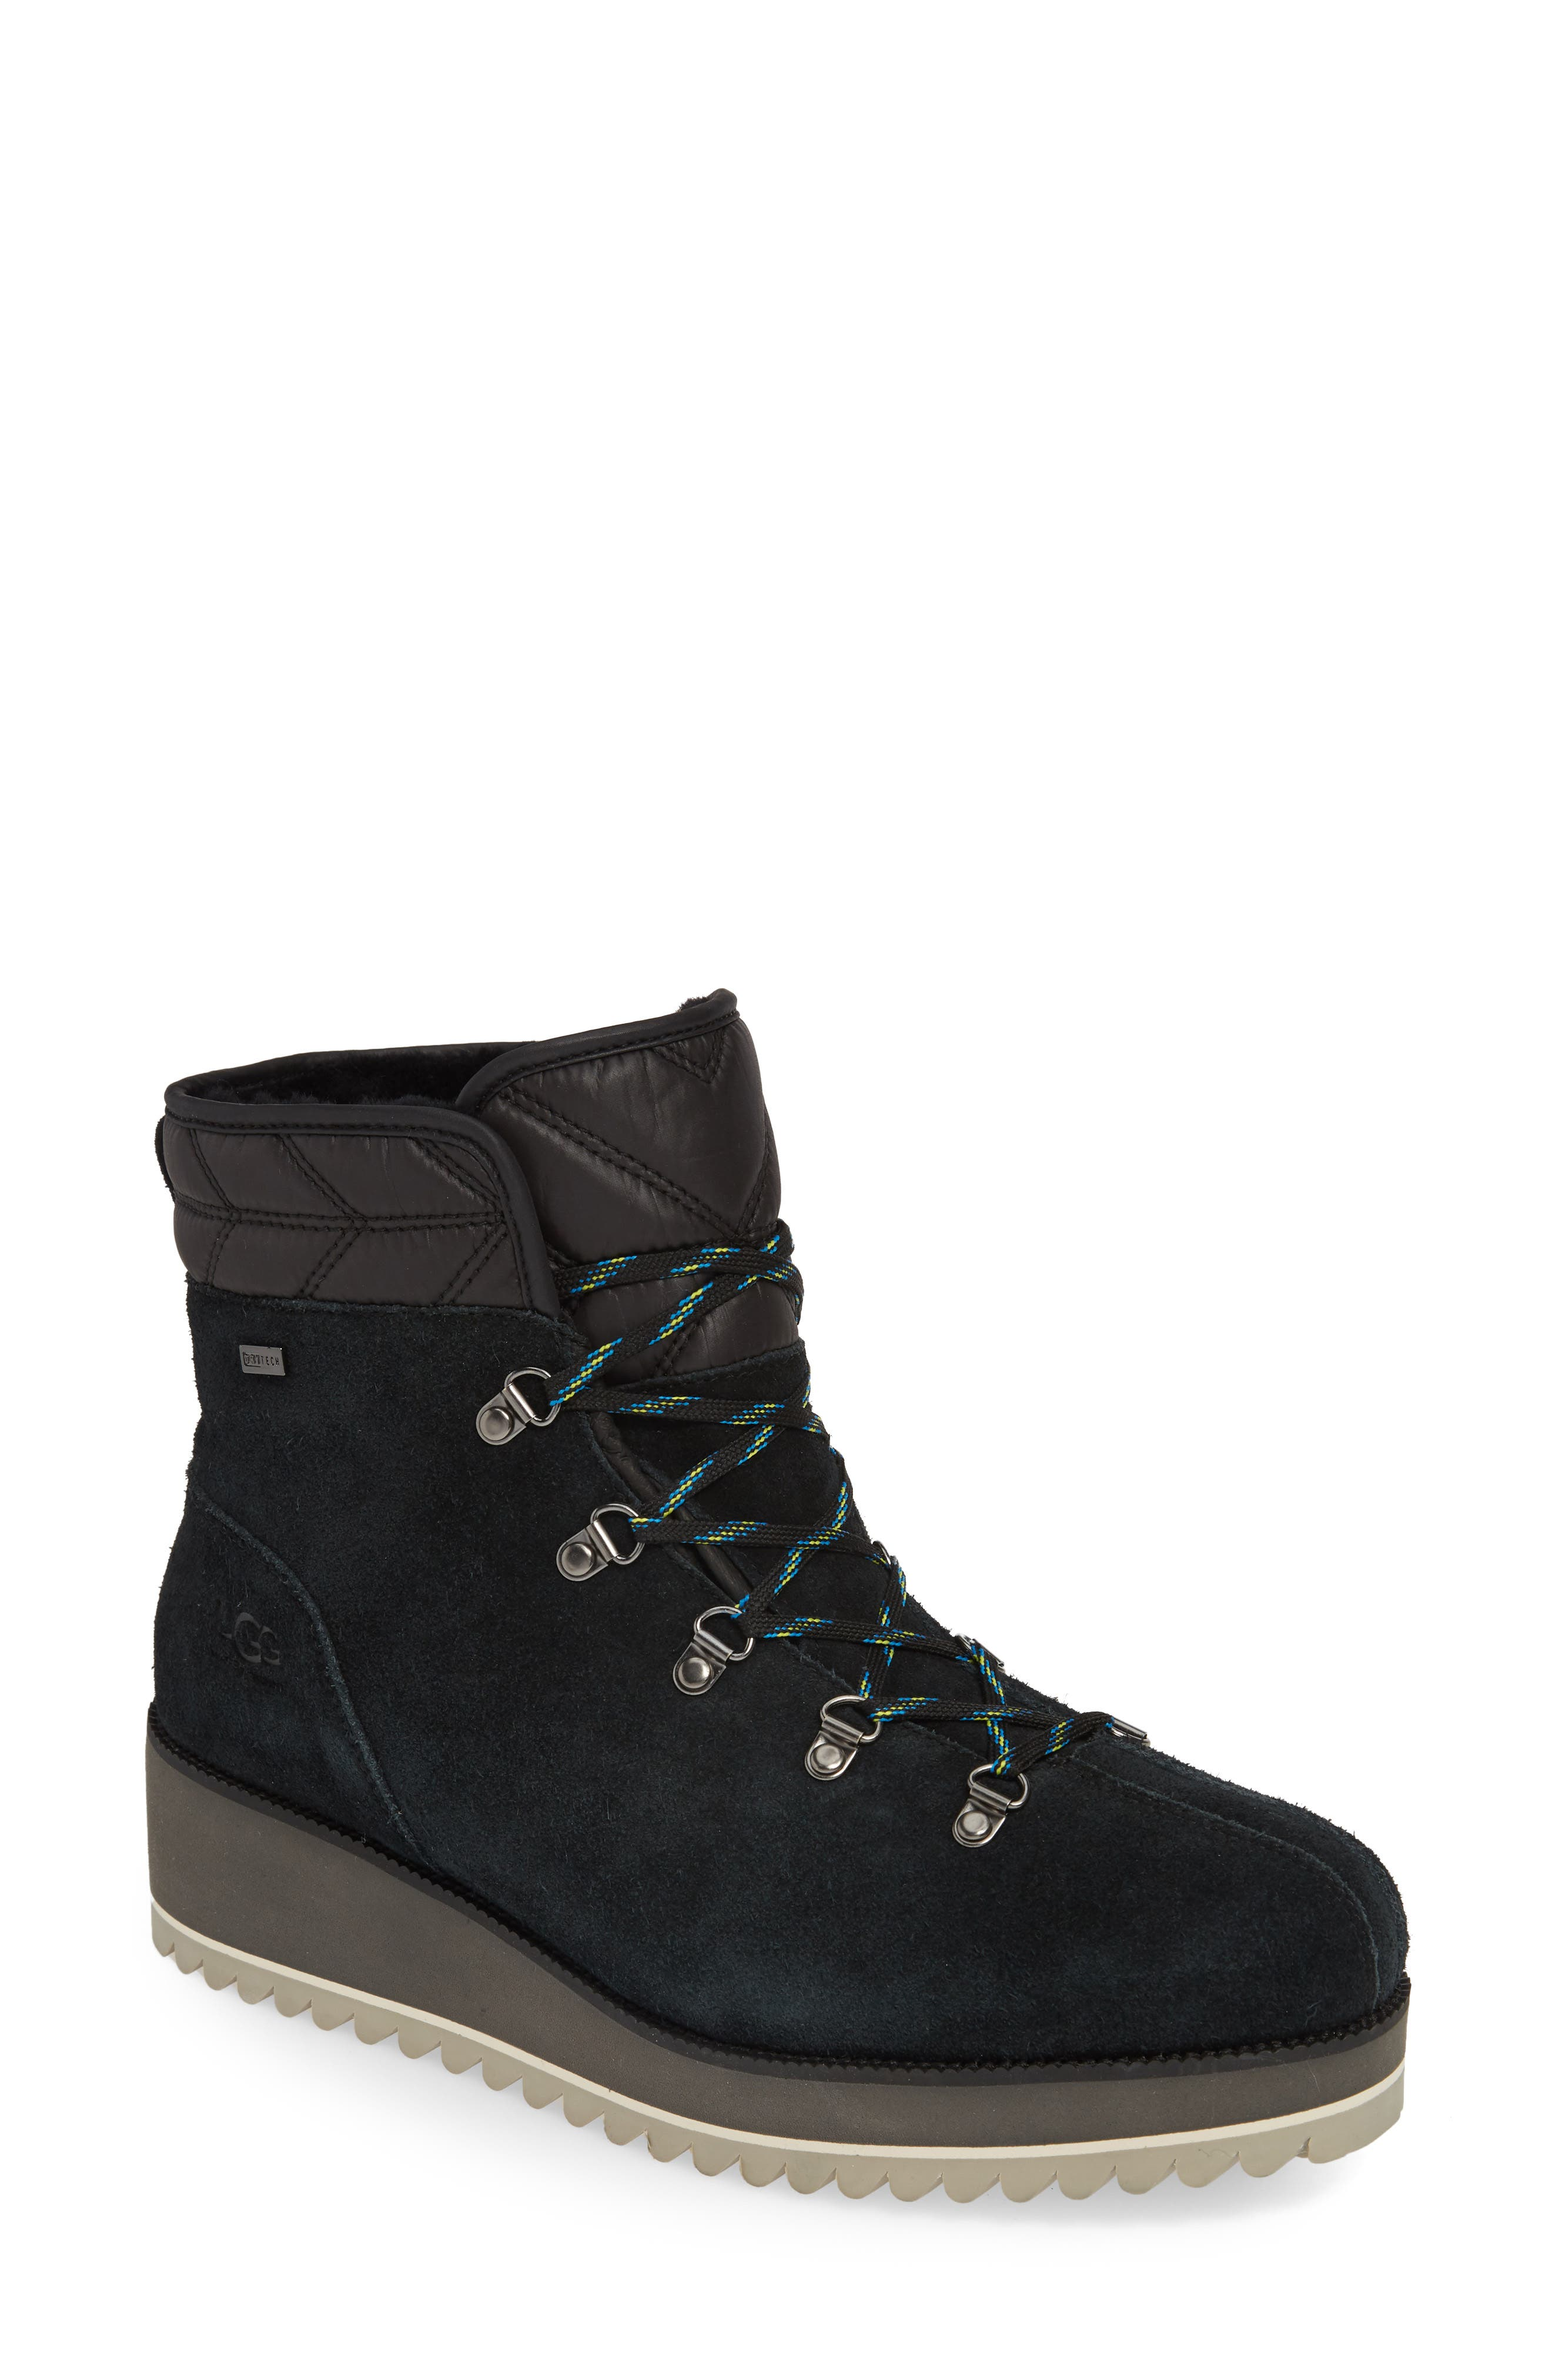 UGG<SUP>®</SUP>, Birch Waterproof Lace-Up Winter Bootie, Main thumbnail 1, color, BLACK